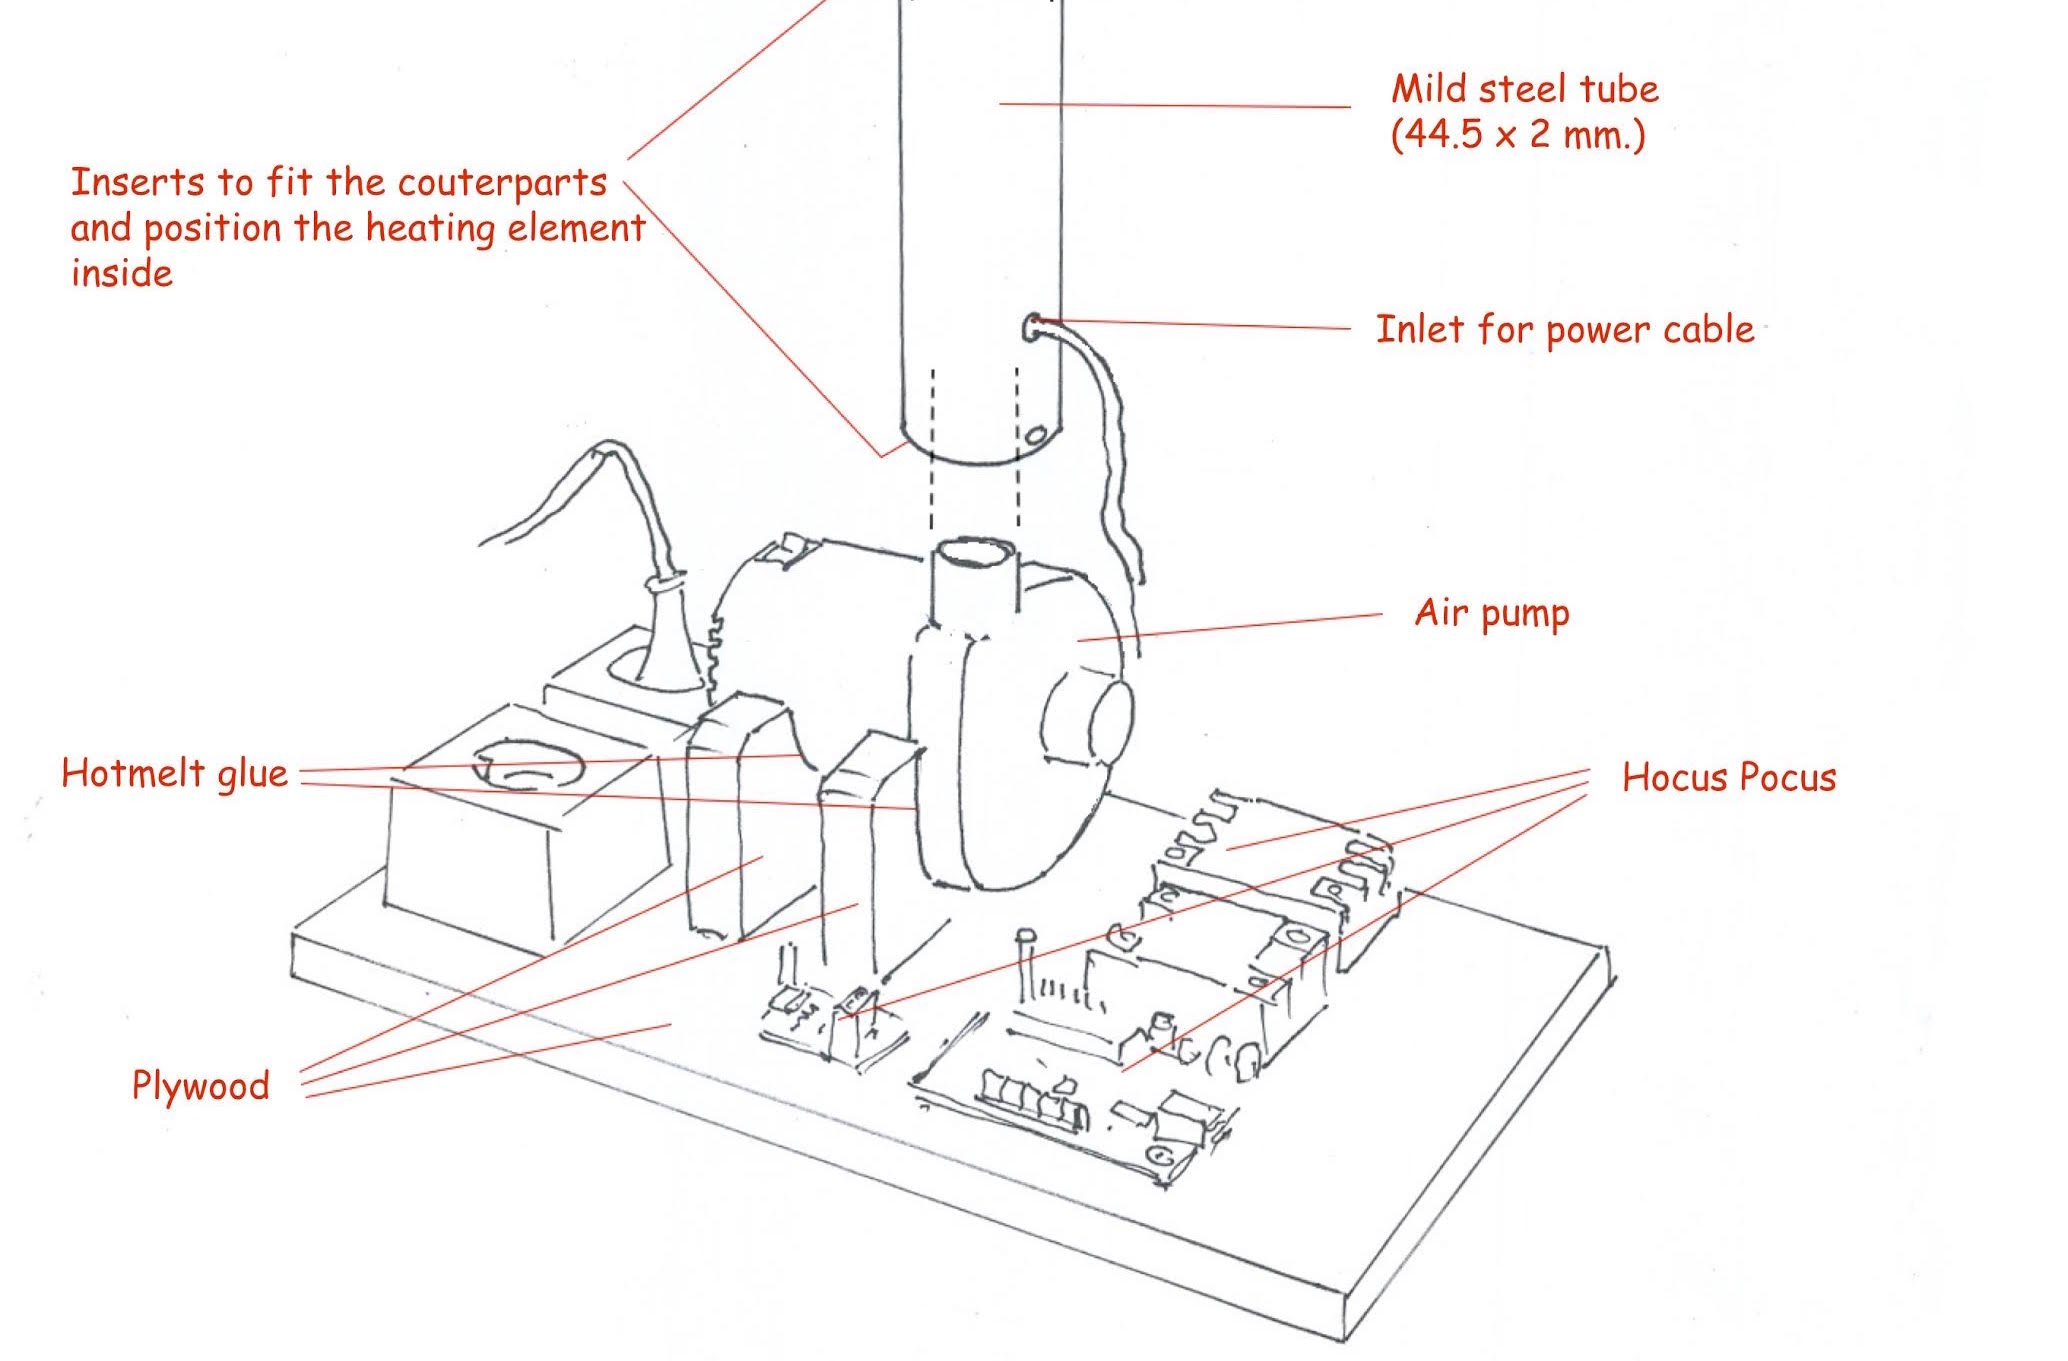 Want to build your own small coffee roaster heres a rough want to build your own small coffee roaster heres a rough blueprint daily coffee news by roast magazinedaily coffee news by roast magazine malvernweather Gallery